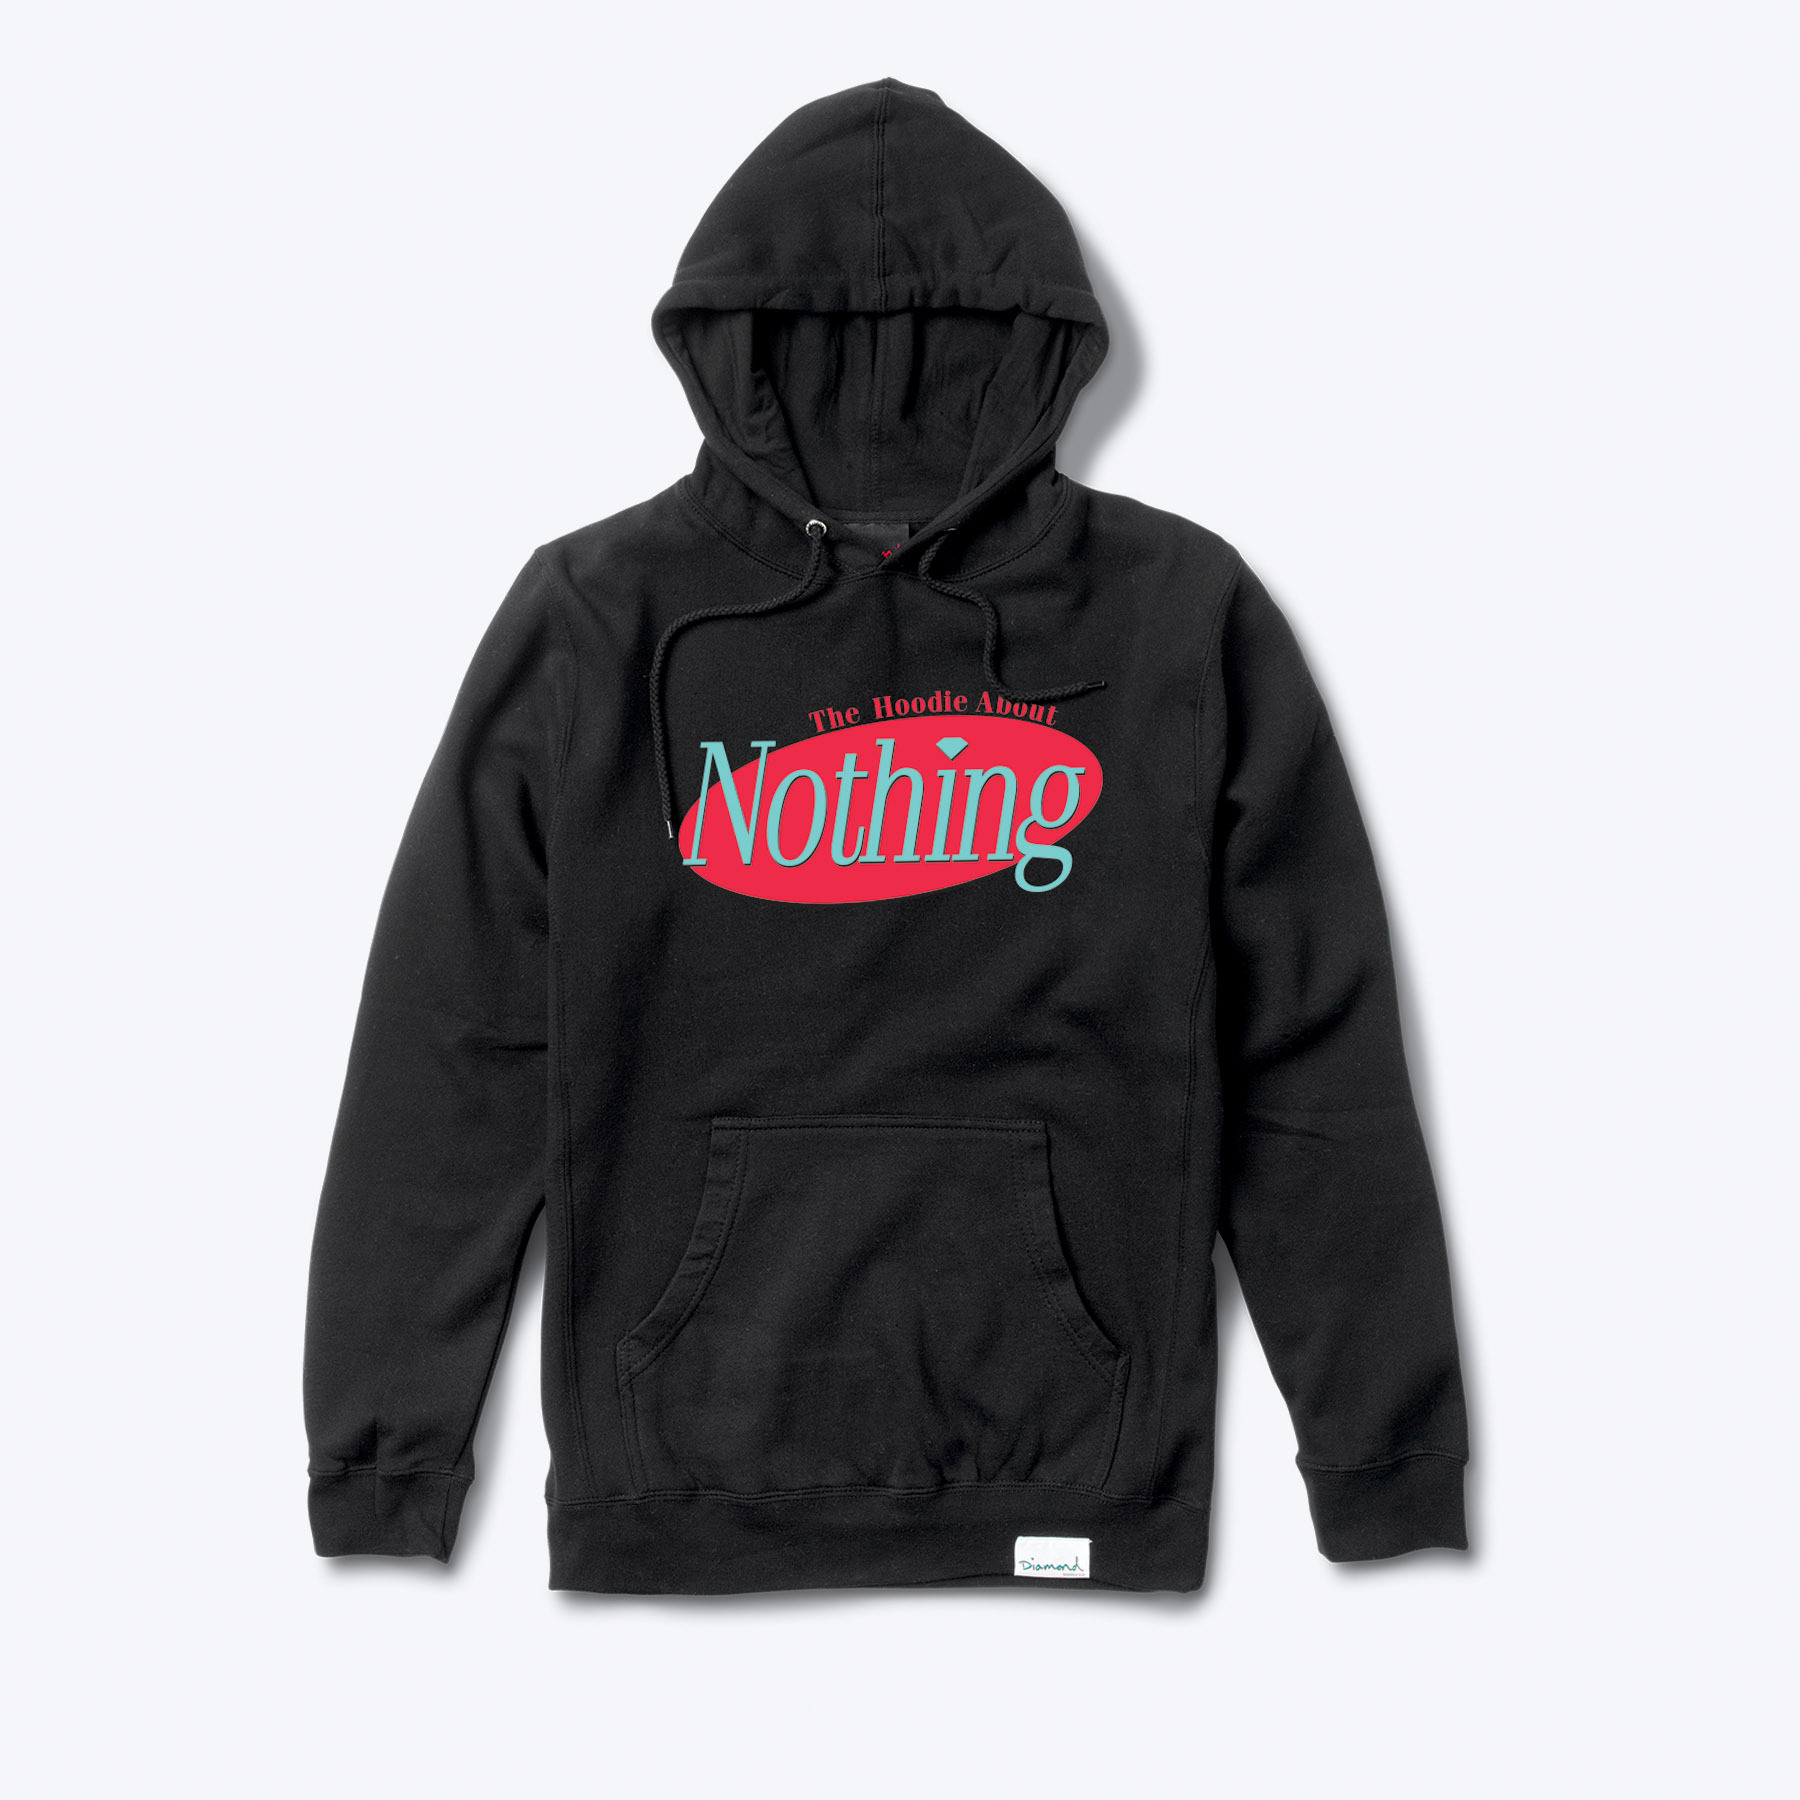 The HoodieAbout Nothing, an exclusive collaborative release from Wale and Diamond Supply Co to commemorate the release of  The Album About Nothing